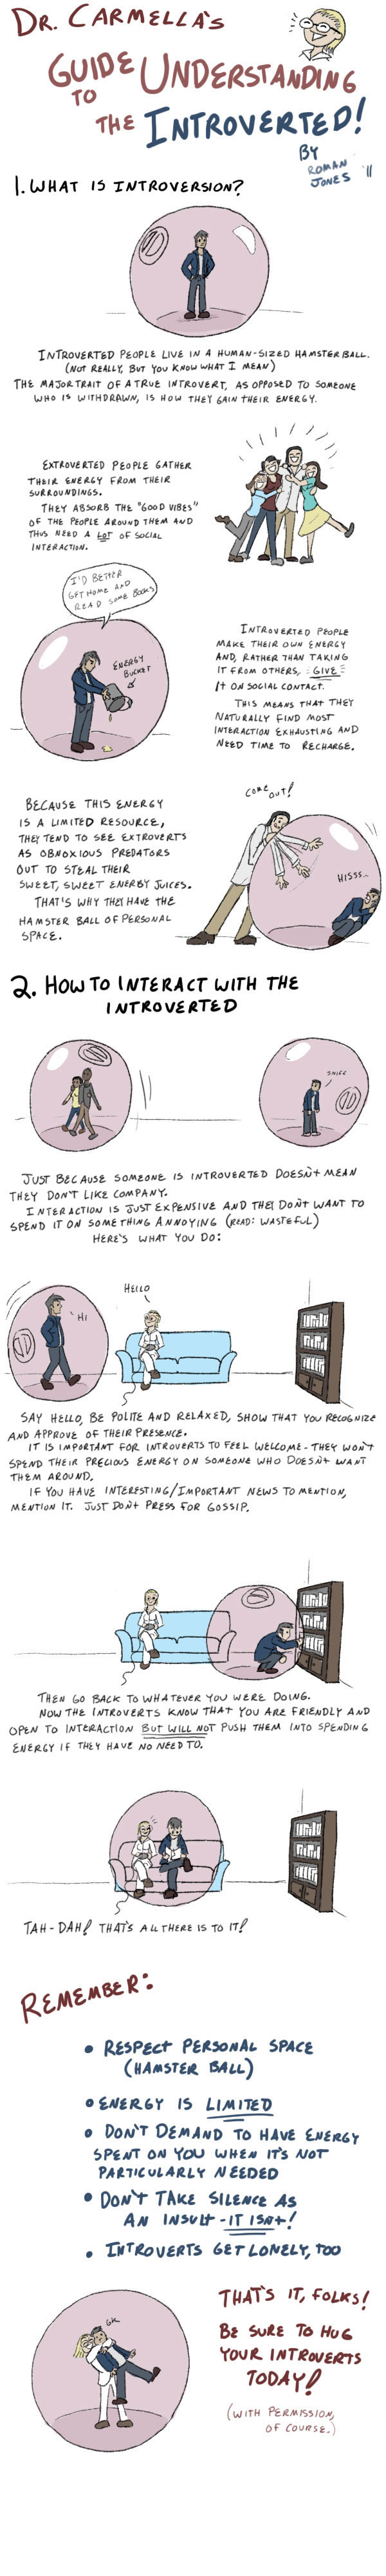 guide to understanding the introverted.jpg